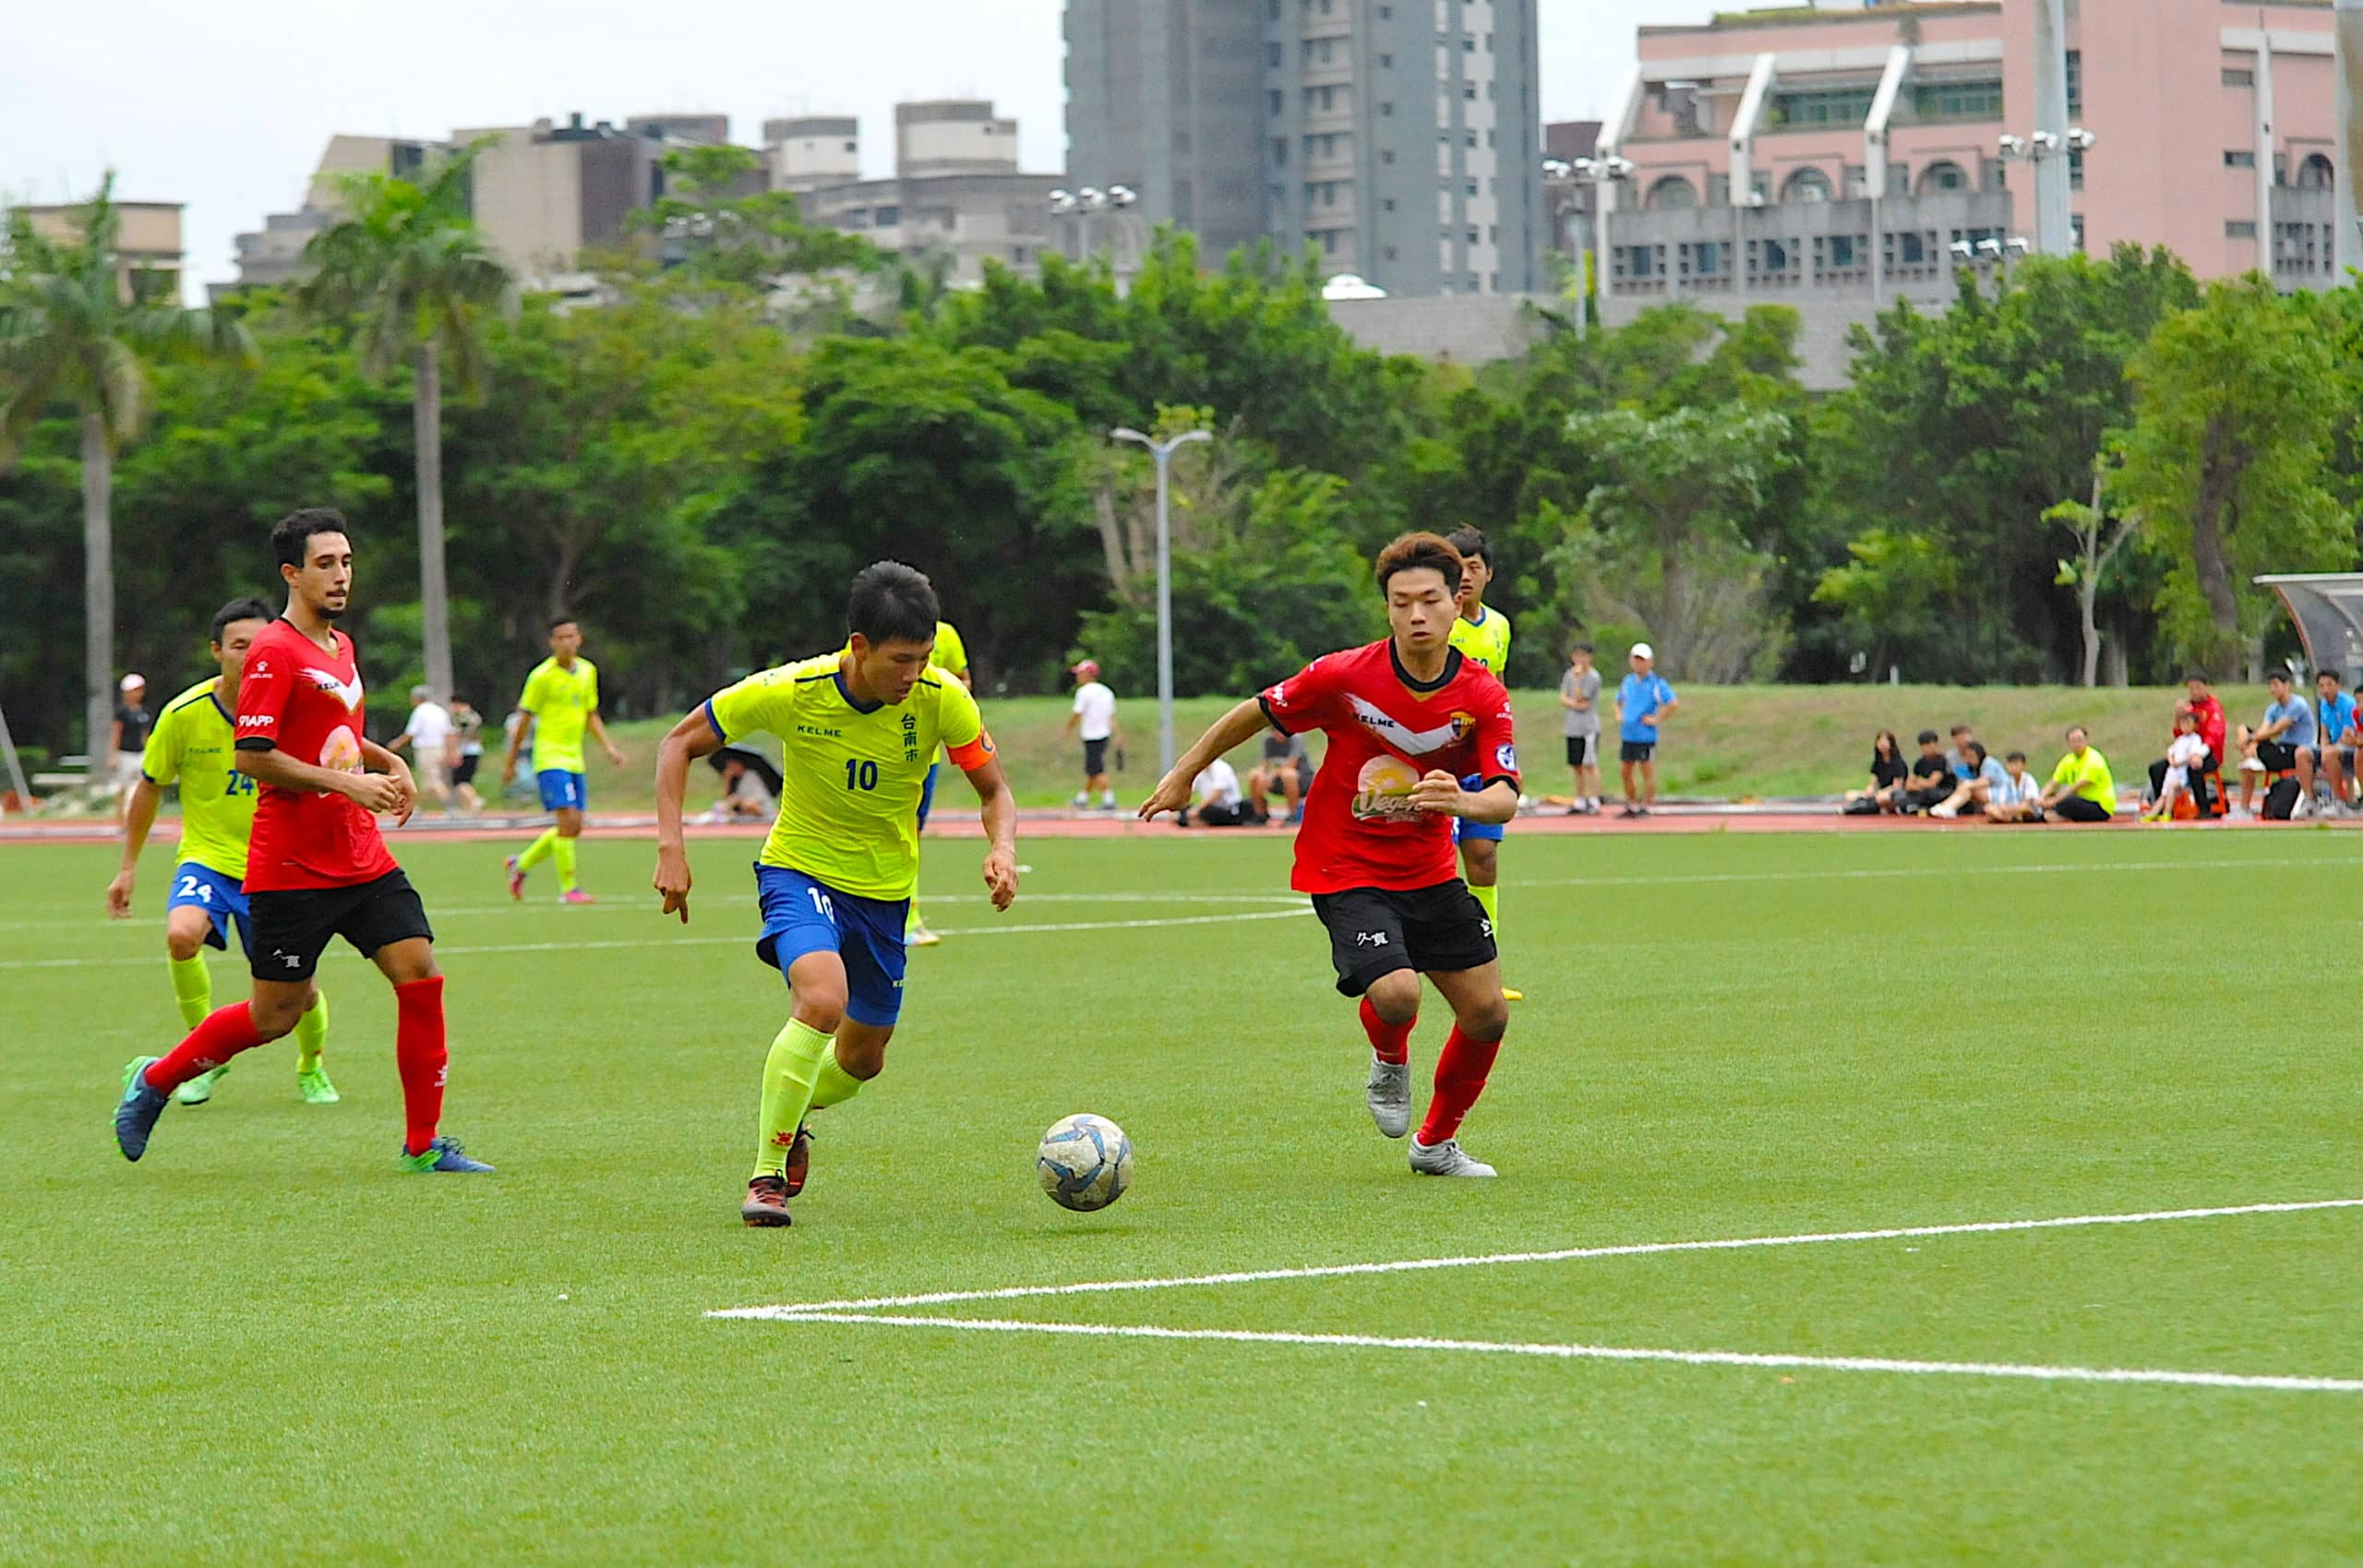 soi-keo-red-lions-vs-taipower-vao-15h-ngay-3-5-2020-1